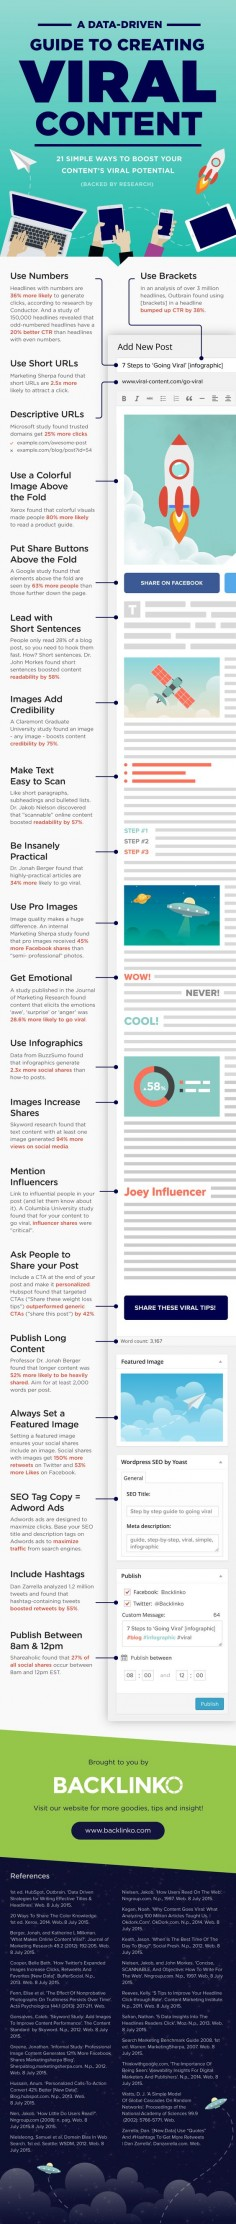 Dreaming of viral content? Stuff that takes off and is seen by millions? Increase your chances of going viral with the 21 tips on this infographic!